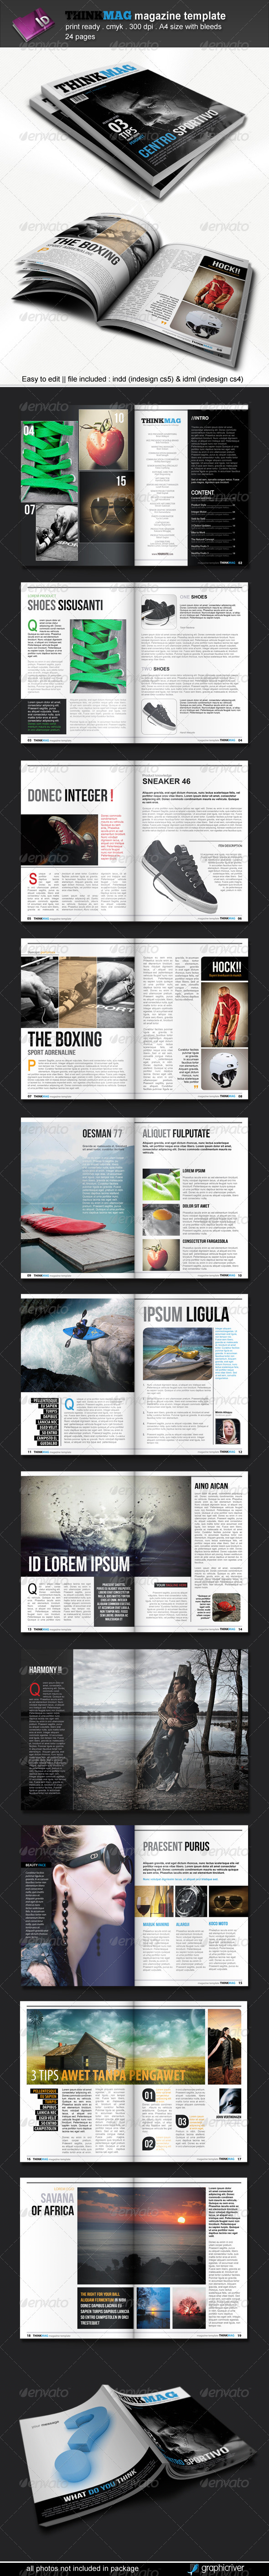 GraphicRiver Thinkmag Magazine Template 3787771